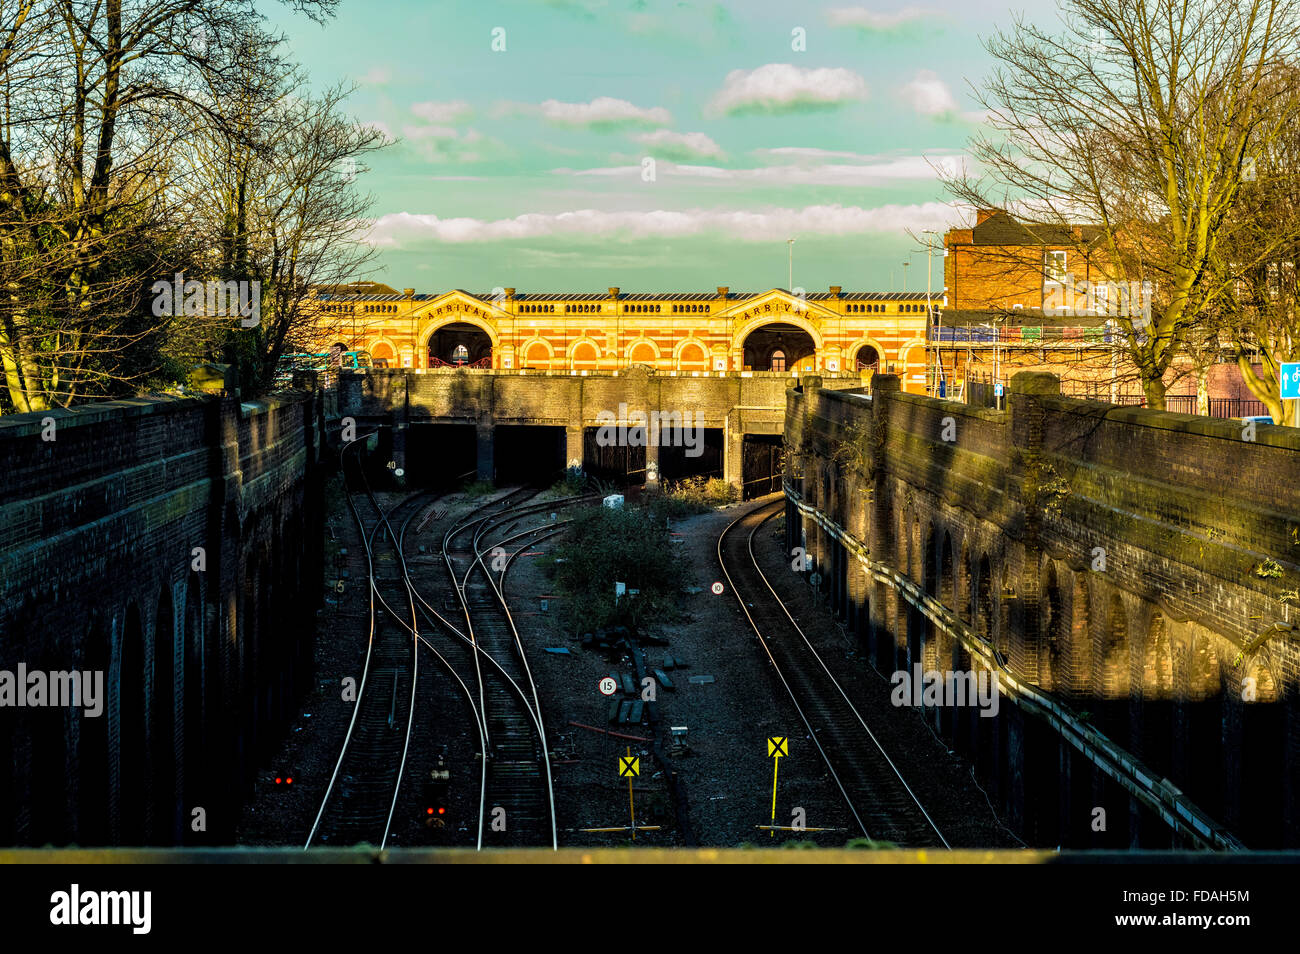 London Road Rail Station, Leicester - Stock Image